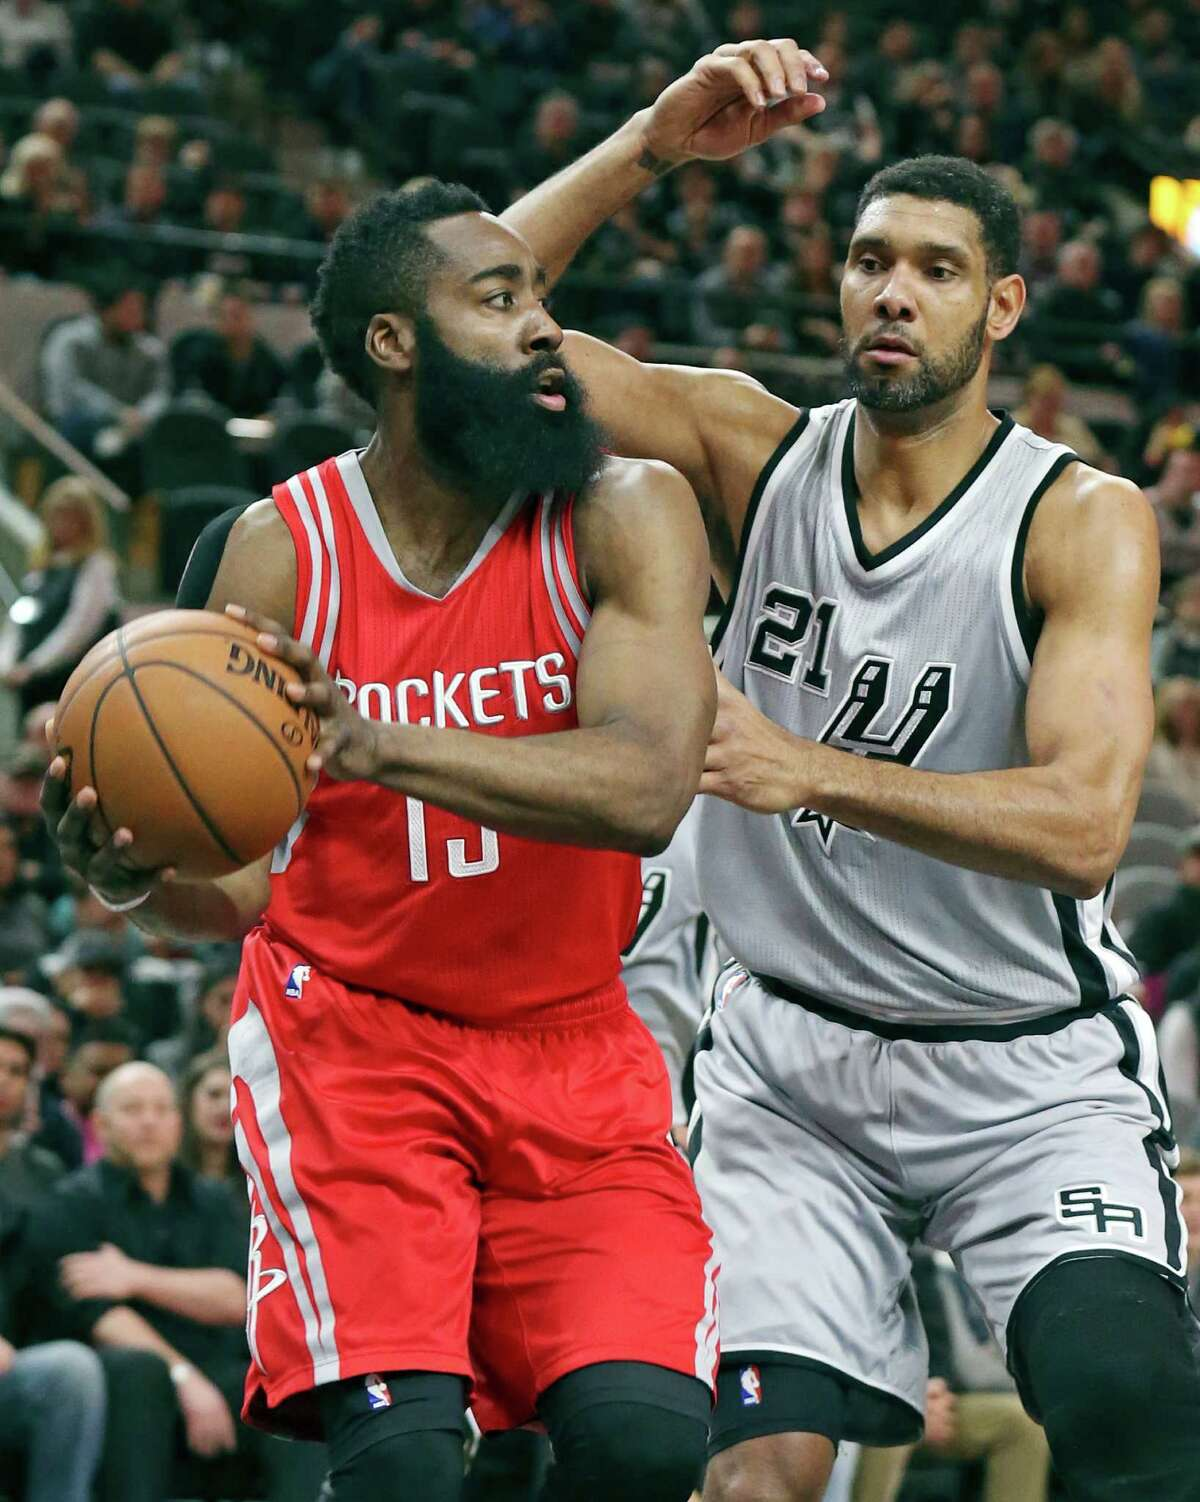 Tim Duncan went 48-22 in his career against the Rockets, averaging 19 points and 10.2 rebounds per game. Browse through the photos to see the future Hall of Famer's 21 best games against the Rockets.